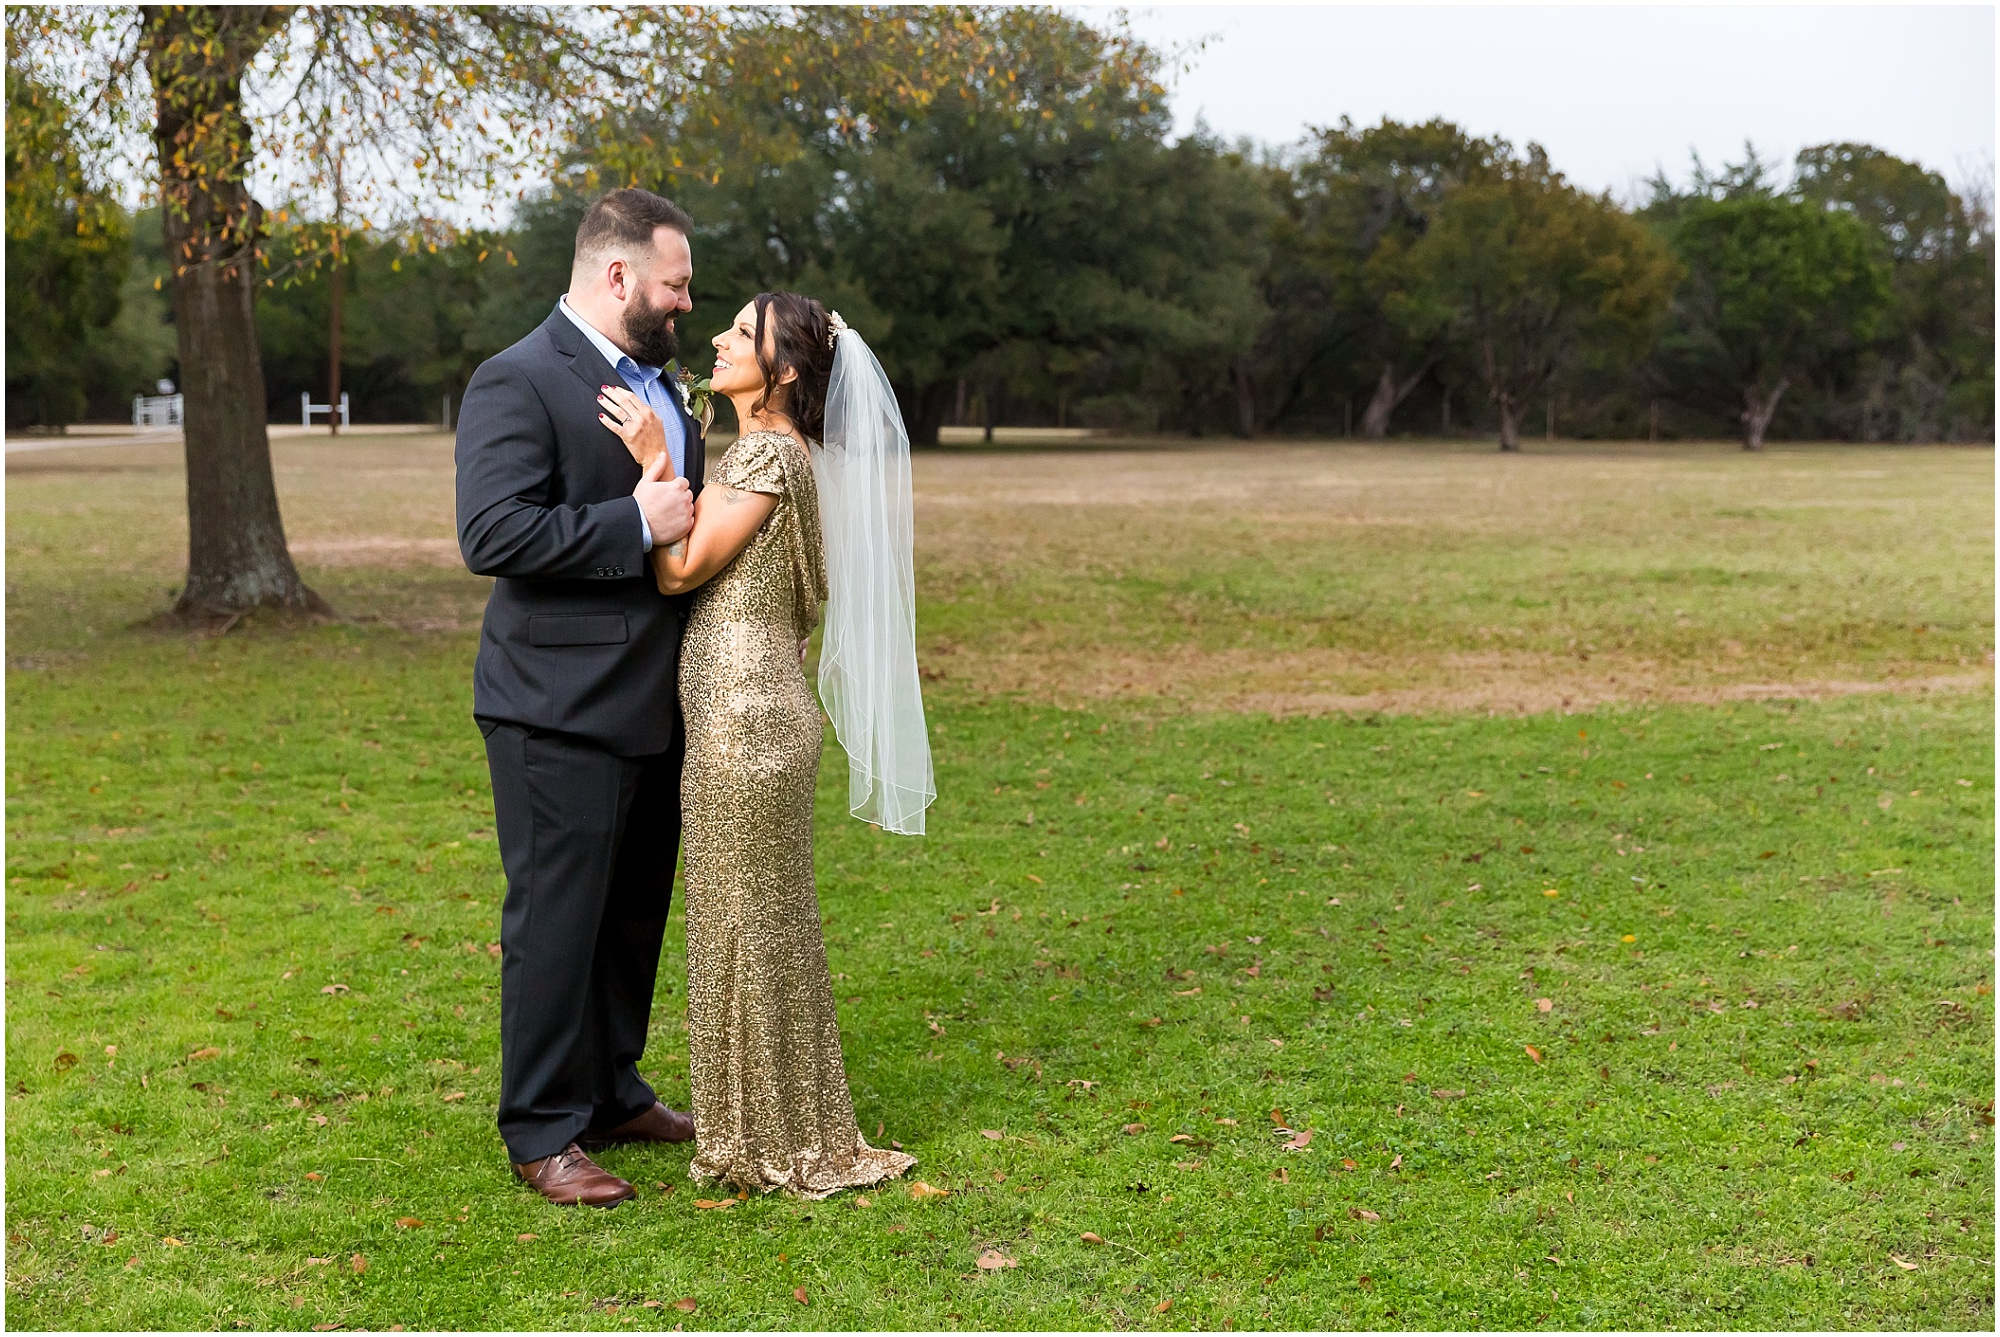 Winter-Elopement-Waco-Texas_0024.jpg